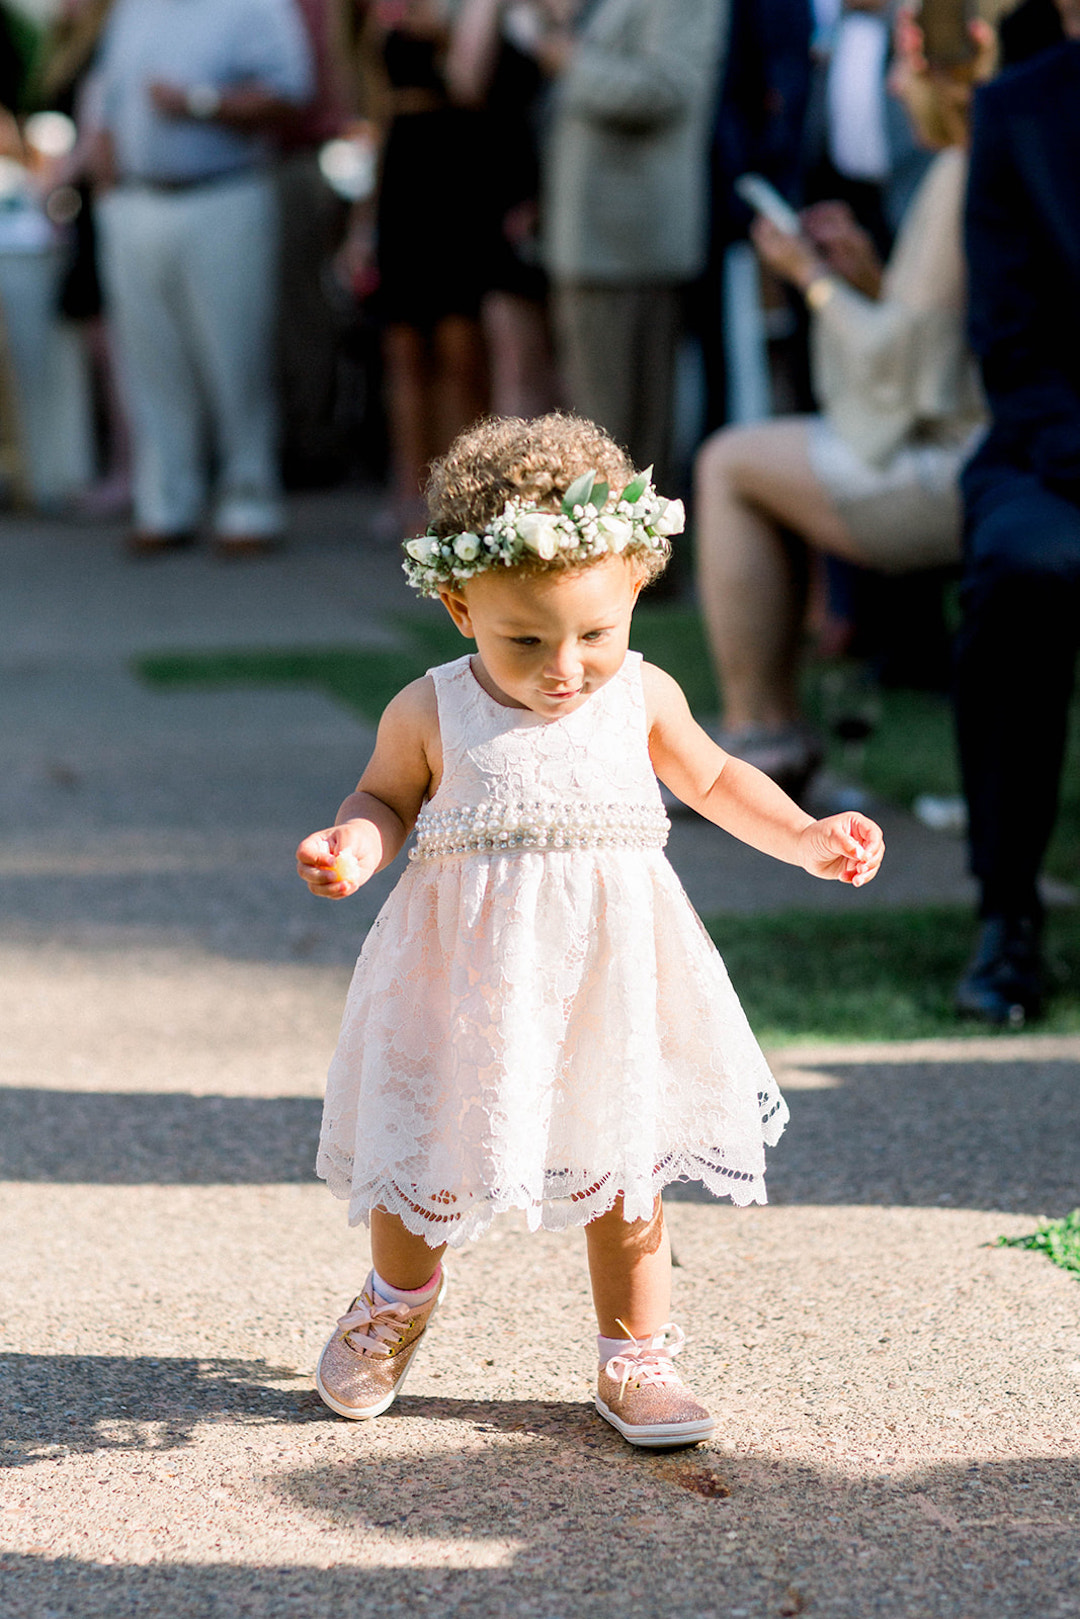 Adorable flower crown for flower girls: Sunset wedding photos:Pittsburgh Botanic Garden wedding planned by Exhale Events. See more wedding inspiration at exhale-events.com!